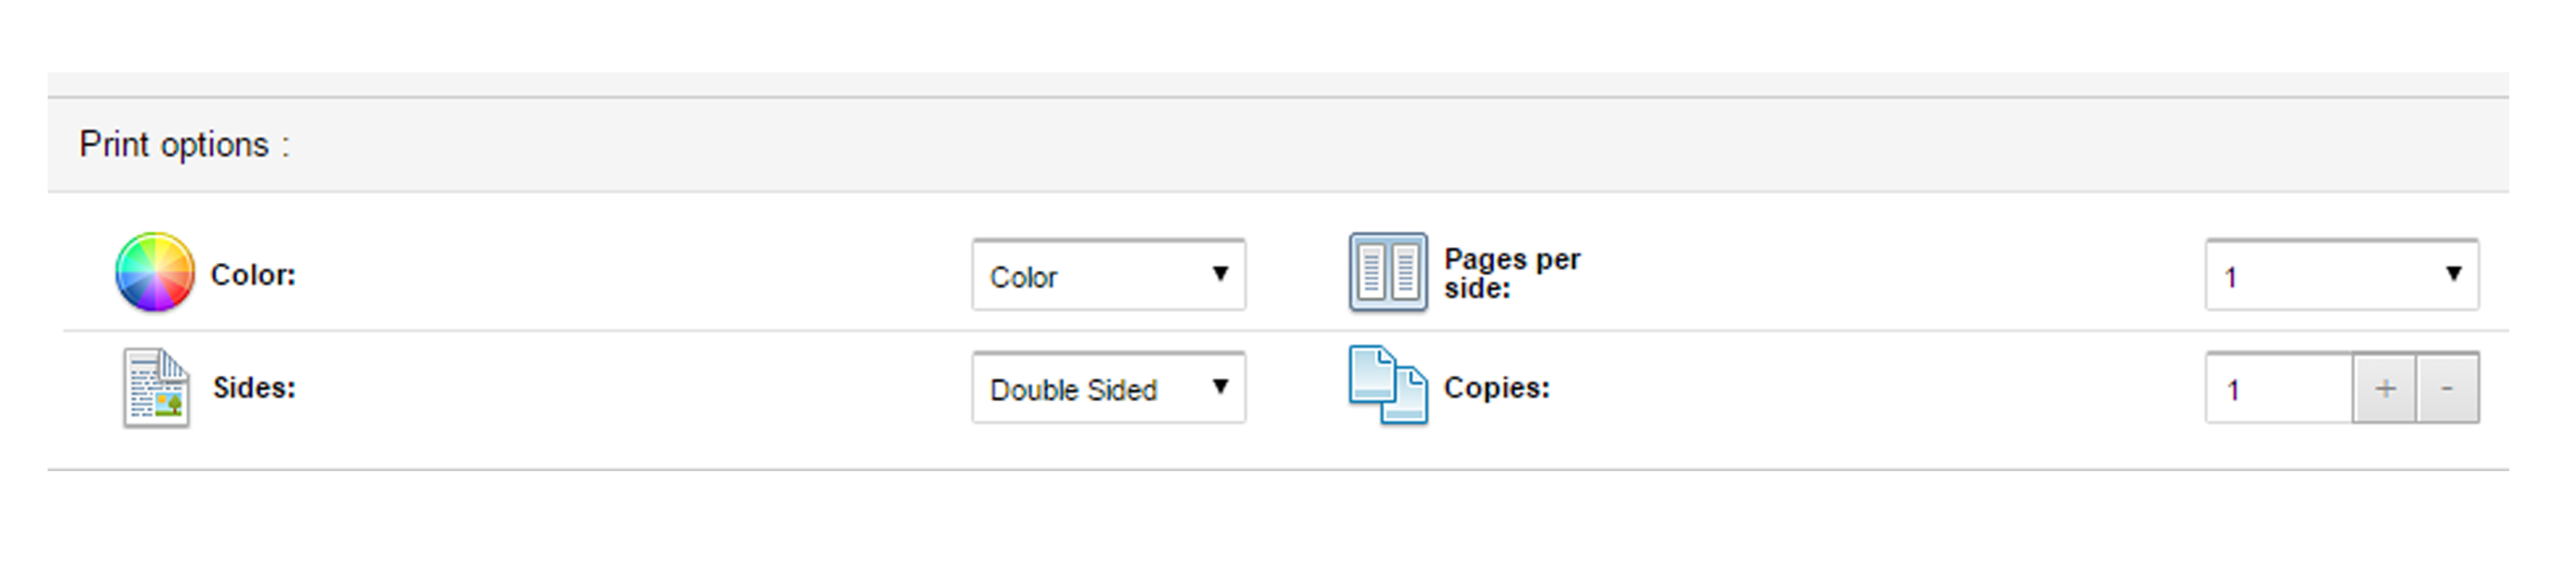 Print settings - including color and slide orientation.